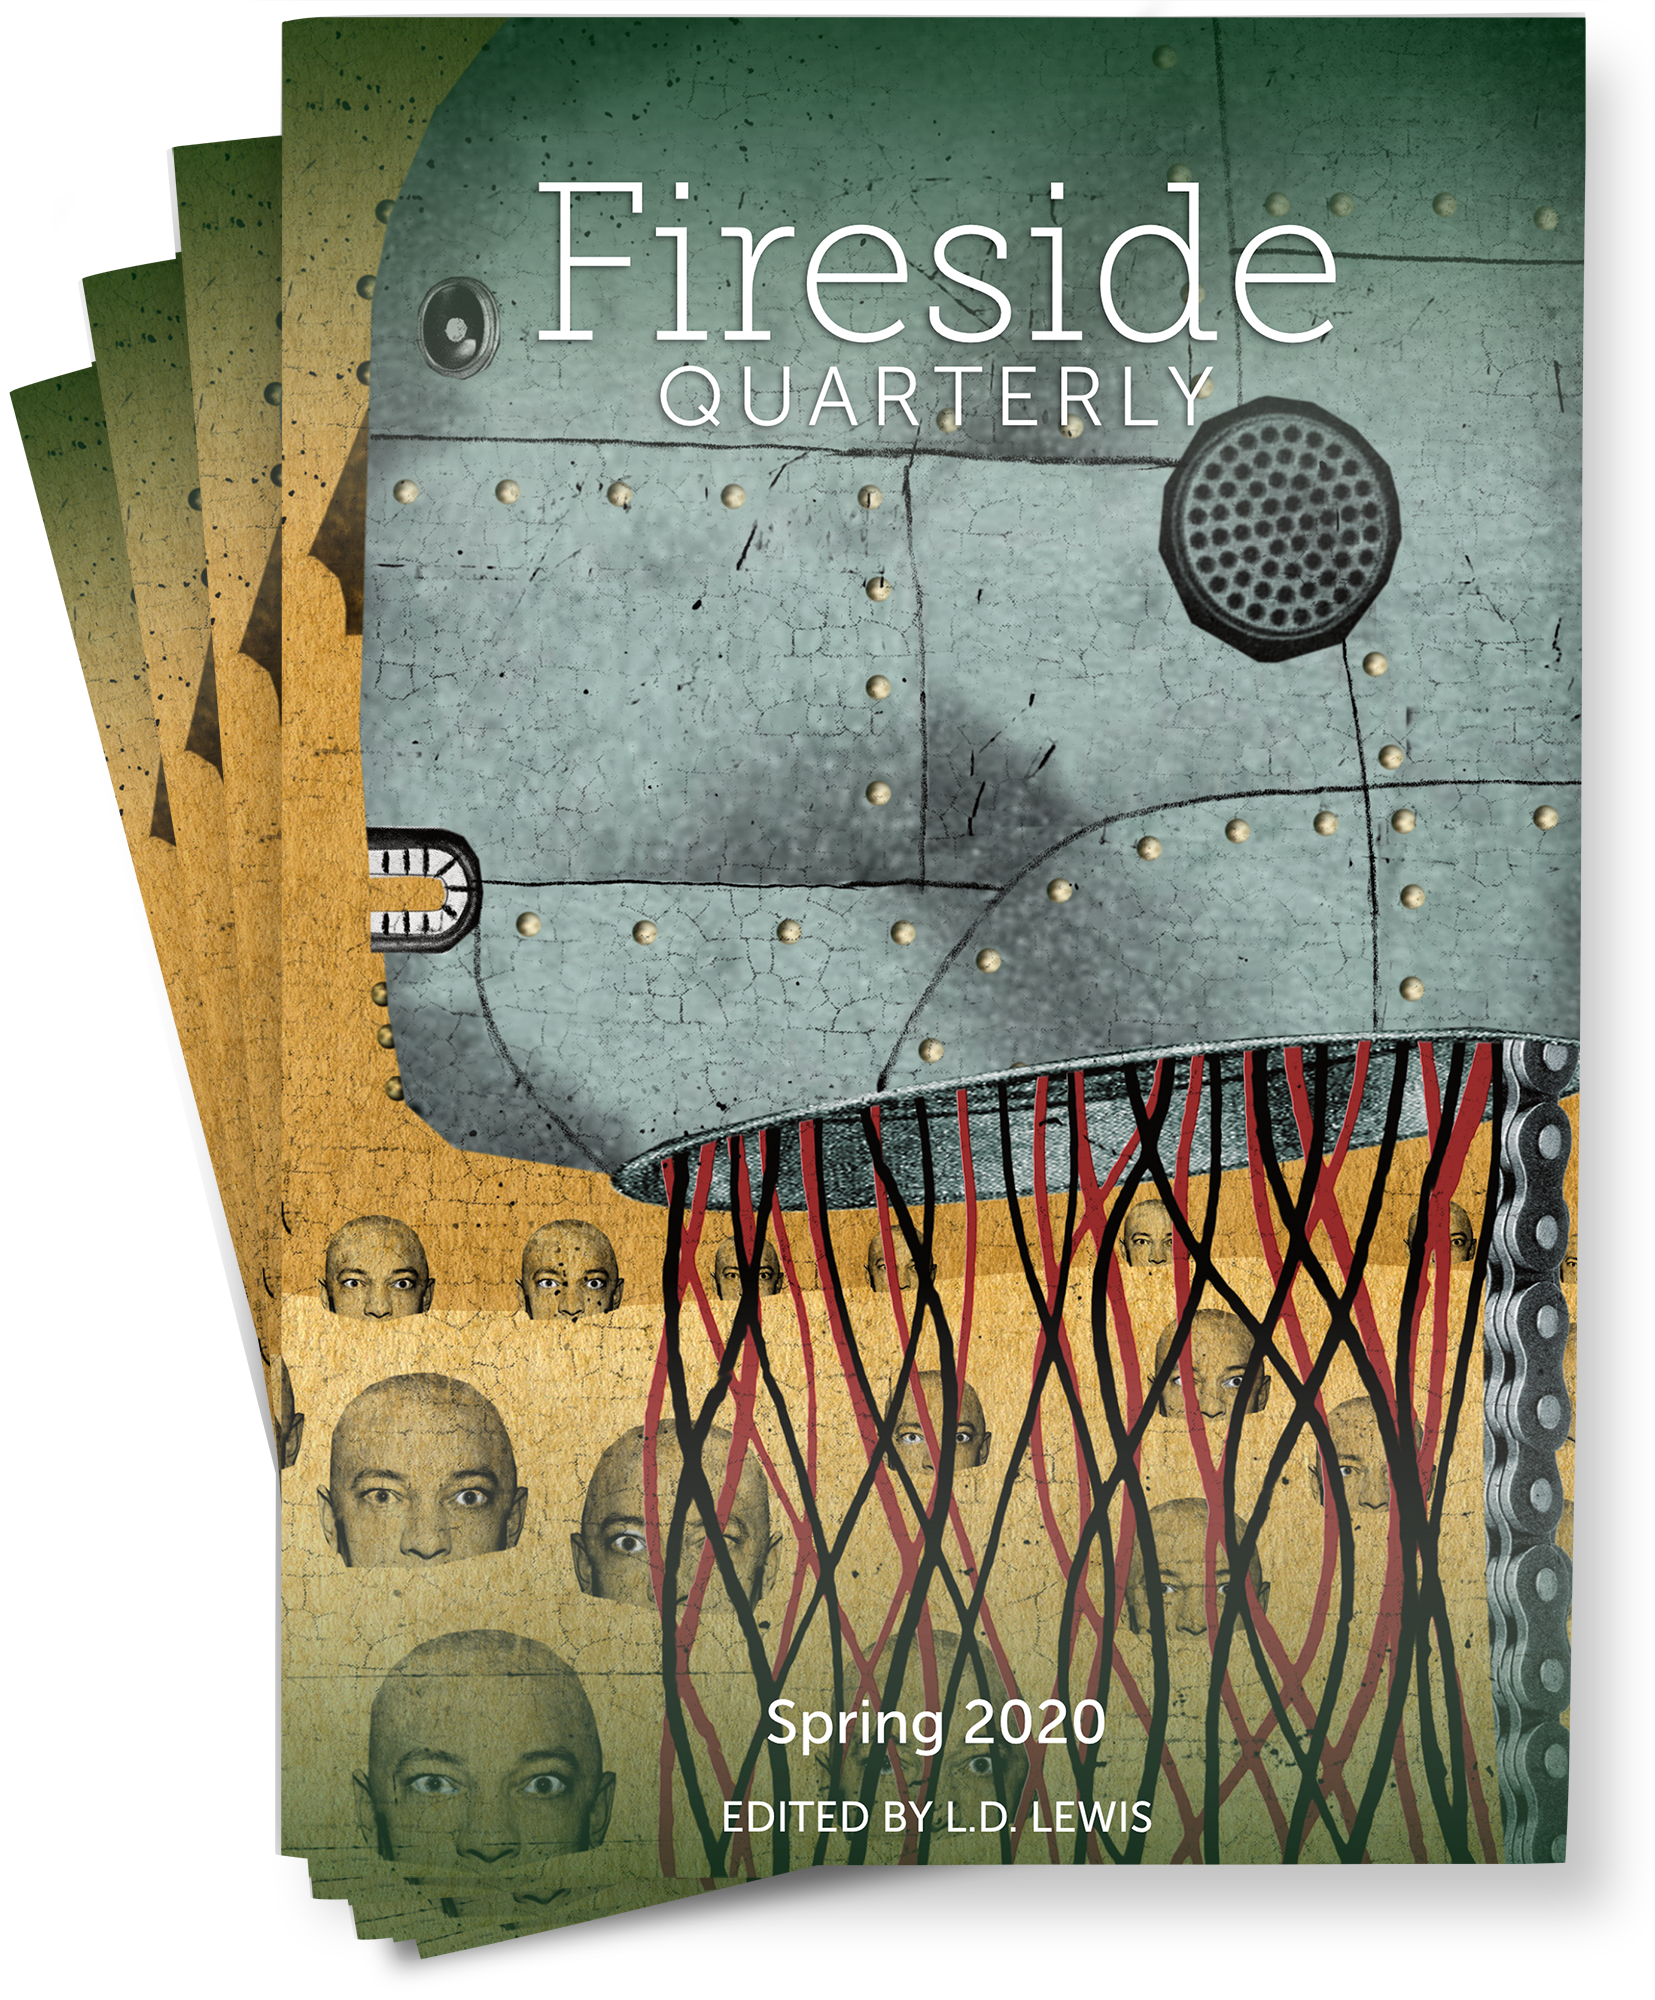 Fireside Quarterly (Spring 2020)